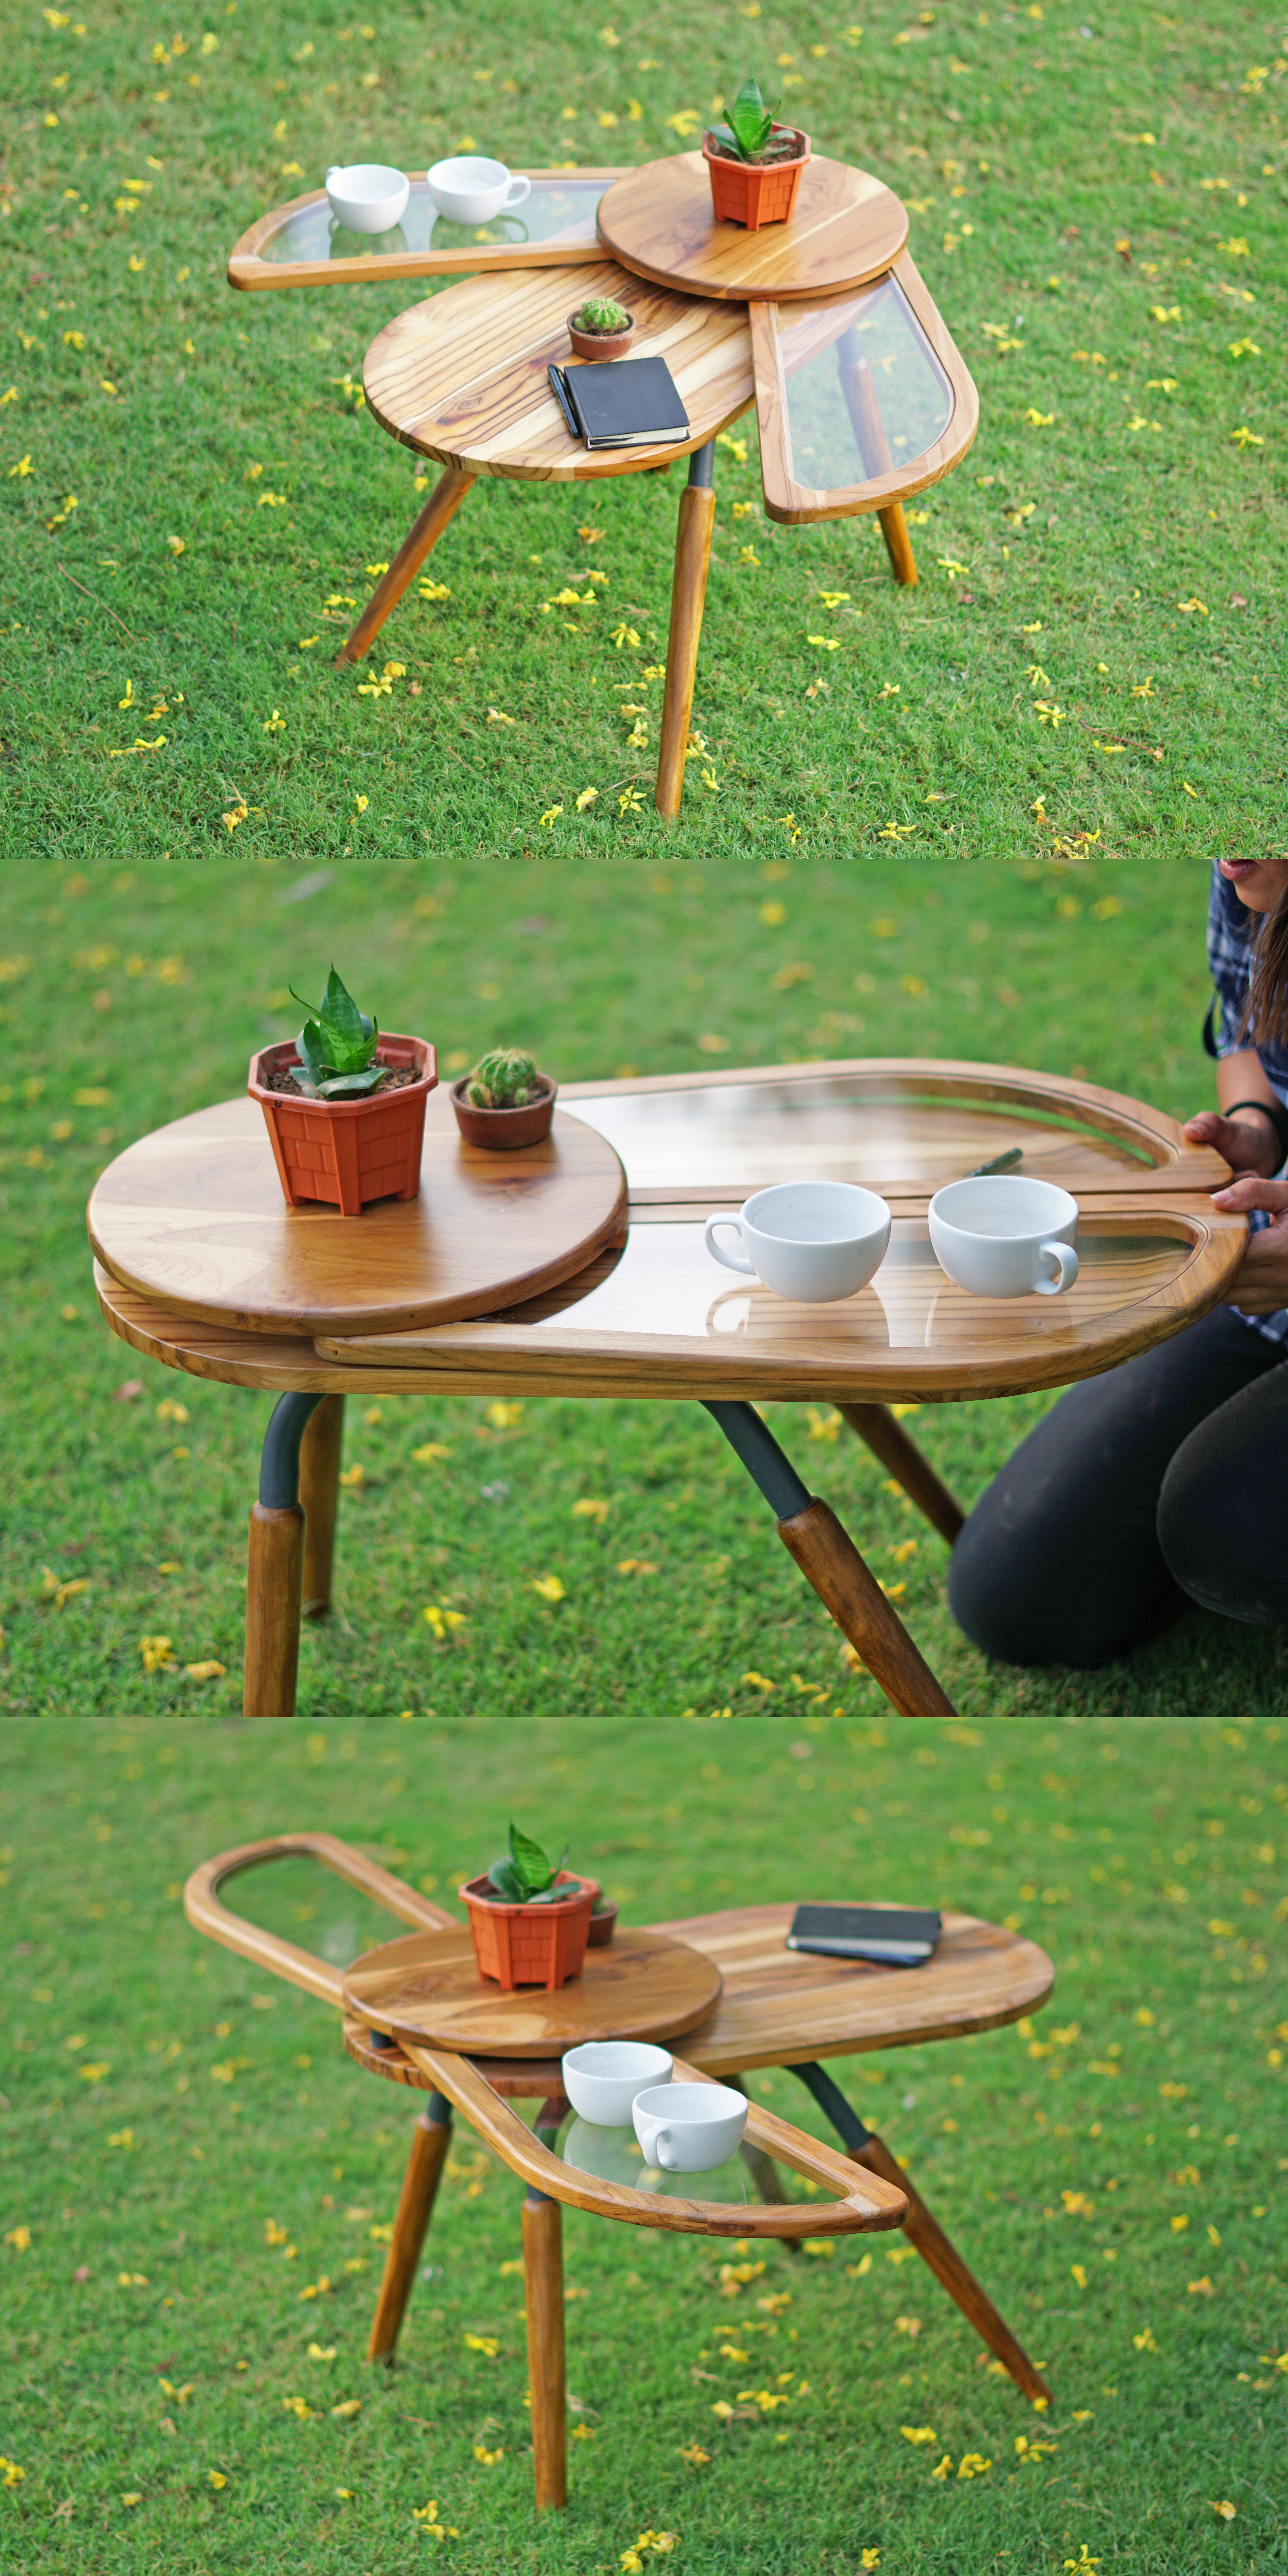 Beetle Inspired Coffee Table Has Wings That Spread Out To Increase Surface Area